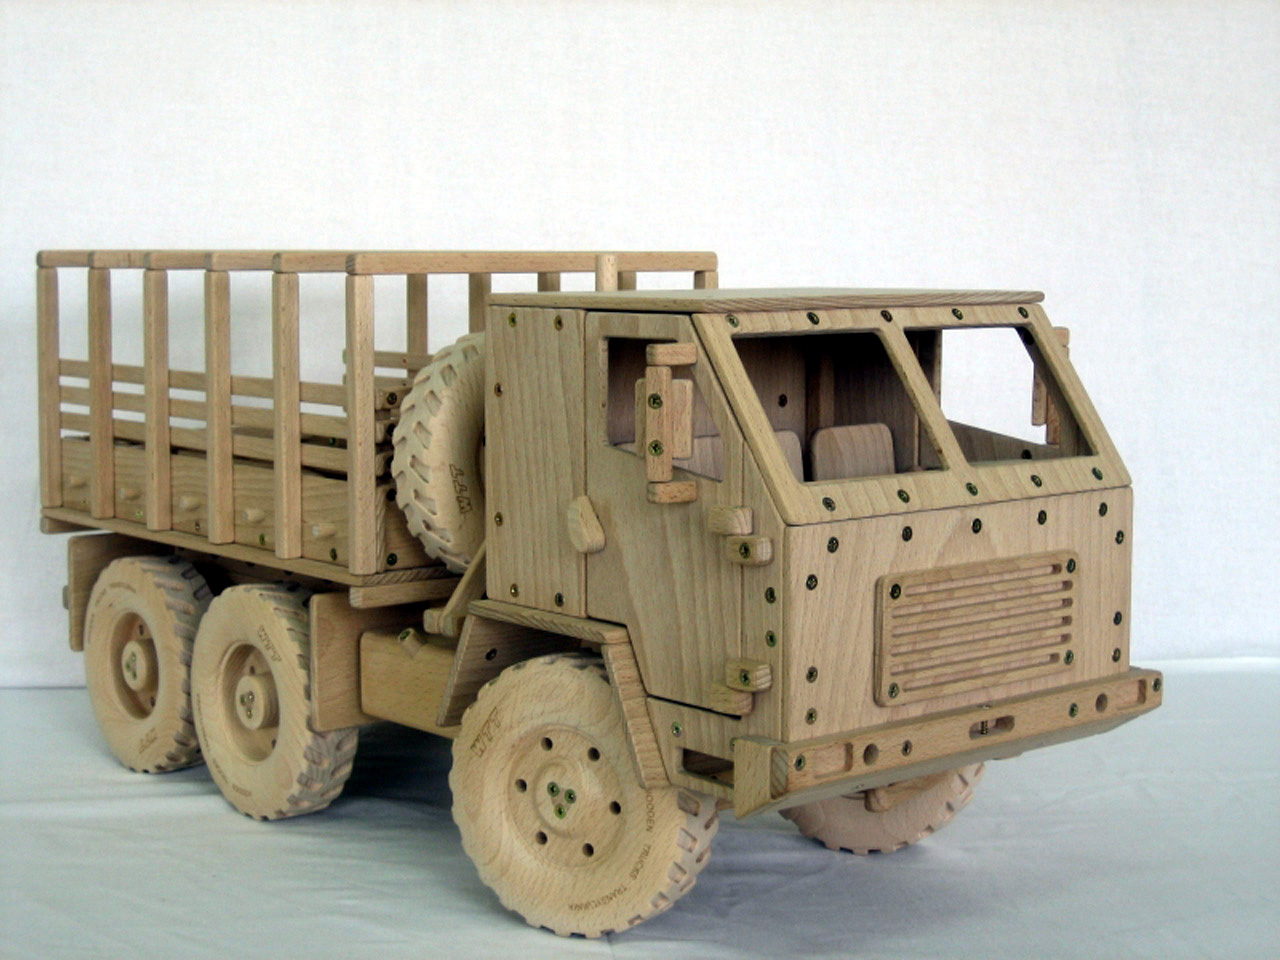 Wooden Trucks Toys And Joys : Wooden toys plans free trucks